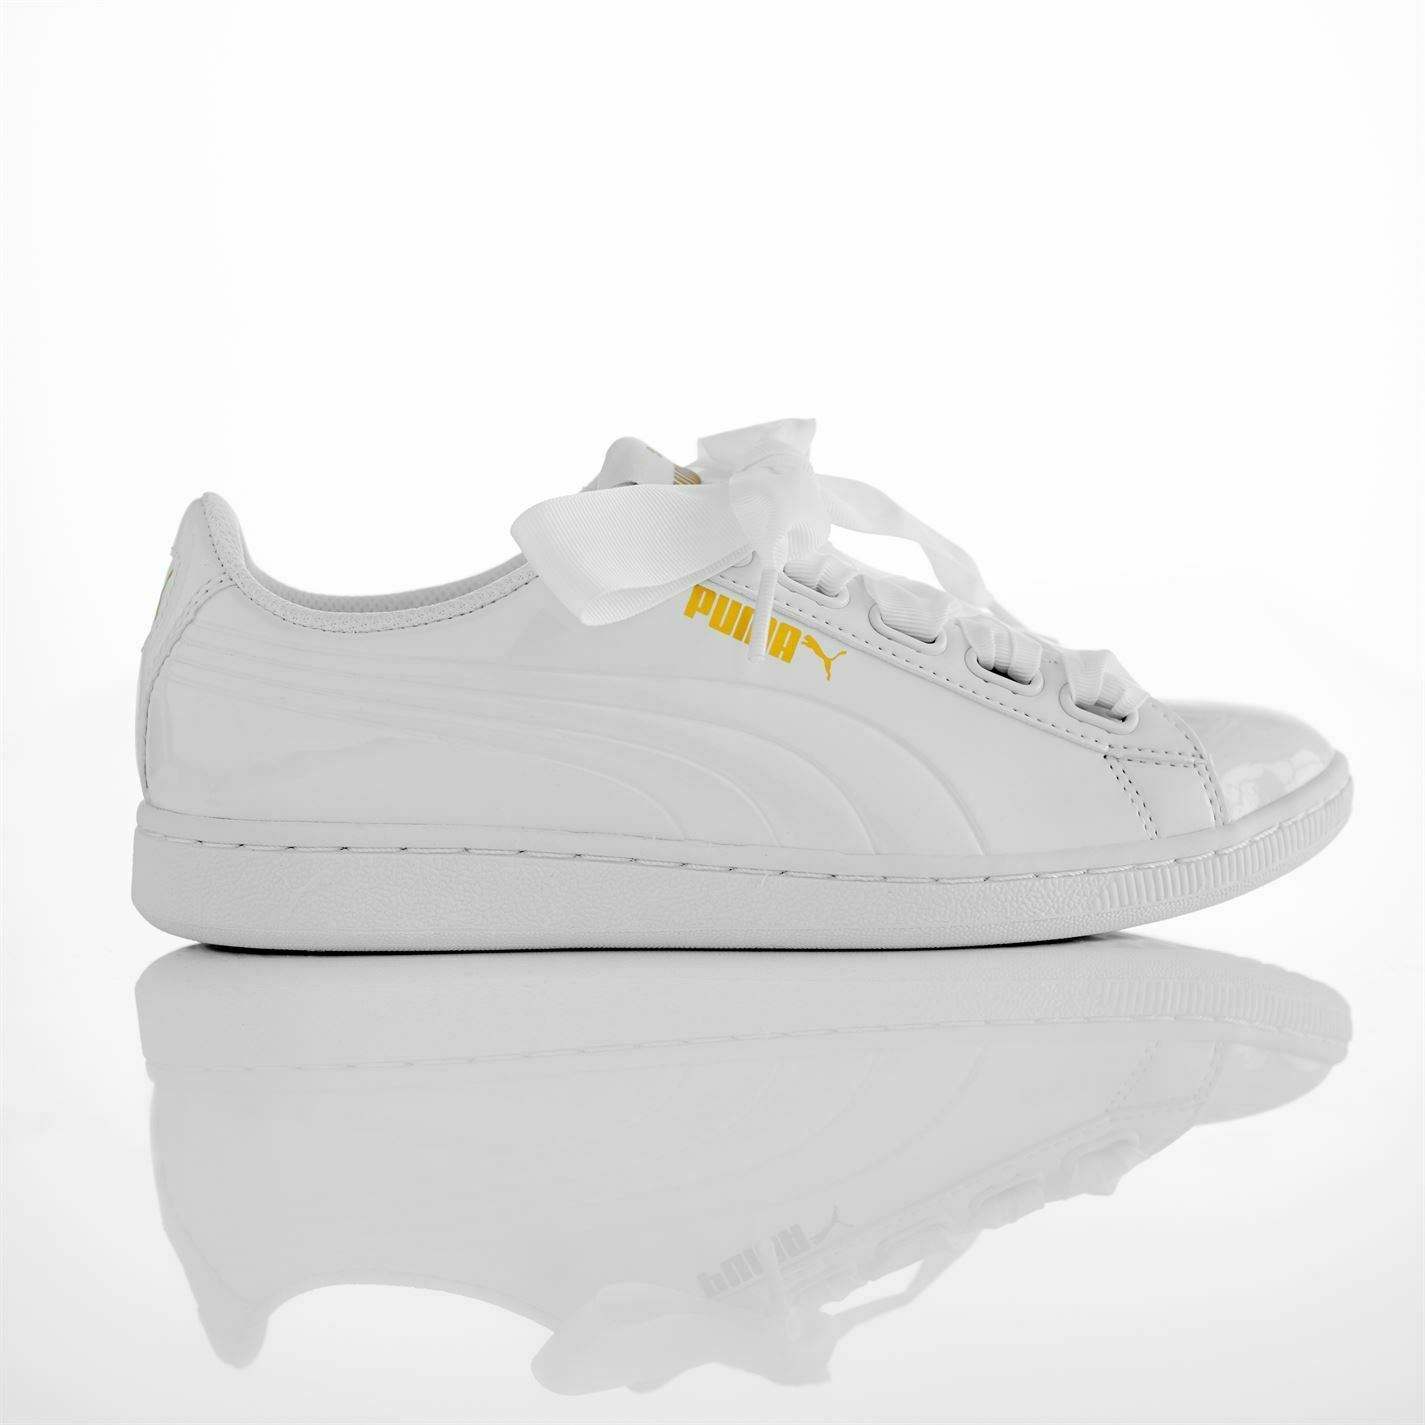 Puma Vikky Ribbon Trainers Trainers Trainers Womens Wht Sports Trainers Sneakers ddcec7